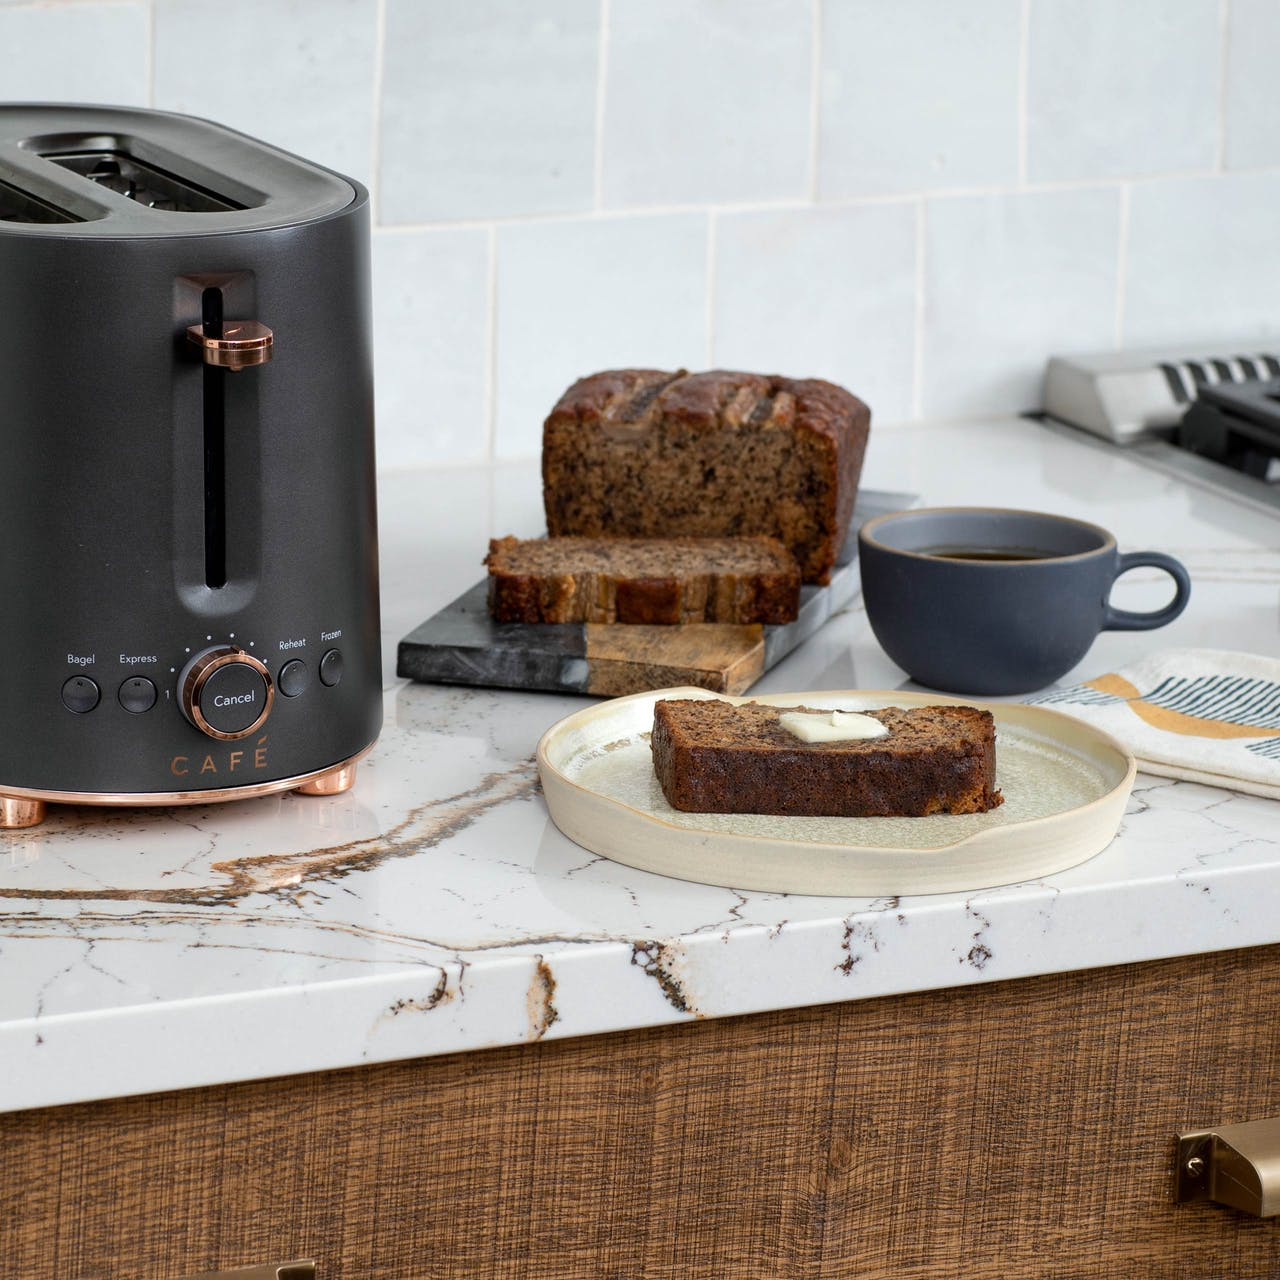 matte black toaster next to slice of toasted banana bread